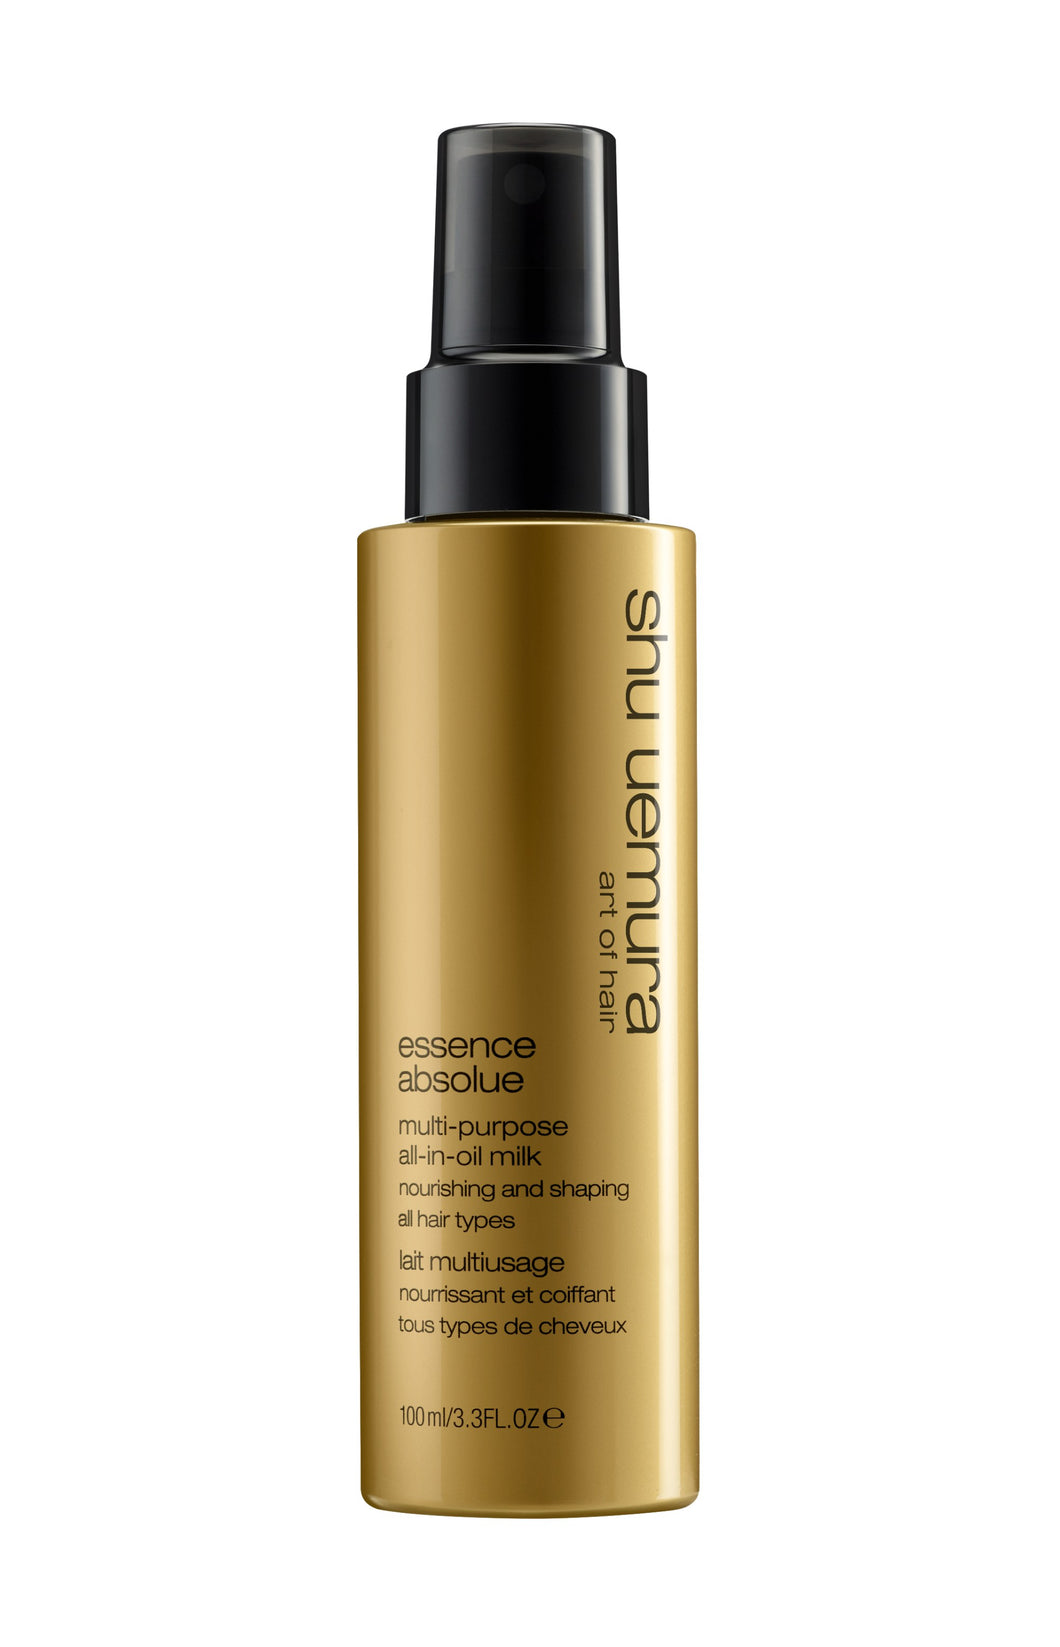 Shu Uemura Essence Absolue All-in-Oil Spray 100ml